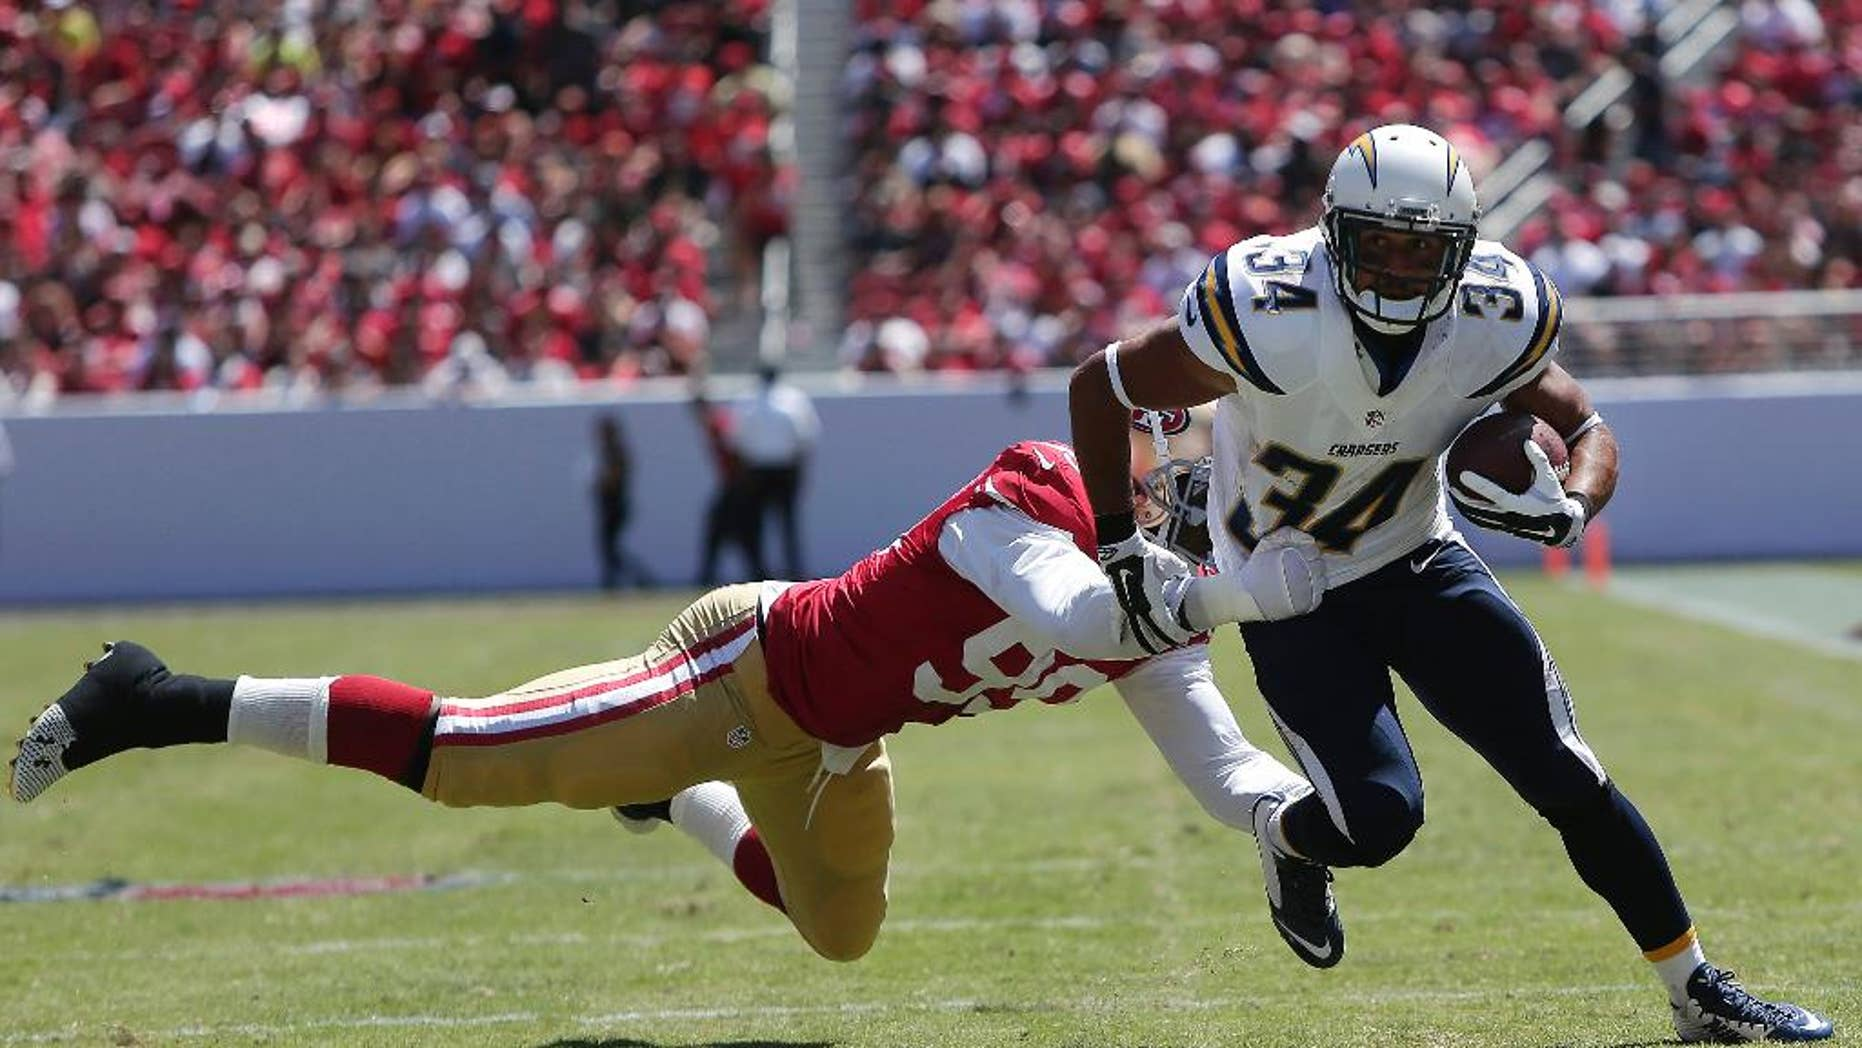 San Diego Chargers running back Donald Brown (34) runs from San Francisco 49ers linebacker Aldon Smith during the first quarter of an NFL preseason football game in Santa Clara, Calif., Sunday, Aug. 24, 2014. (AP Photo/Marcio Jose Sanchez)